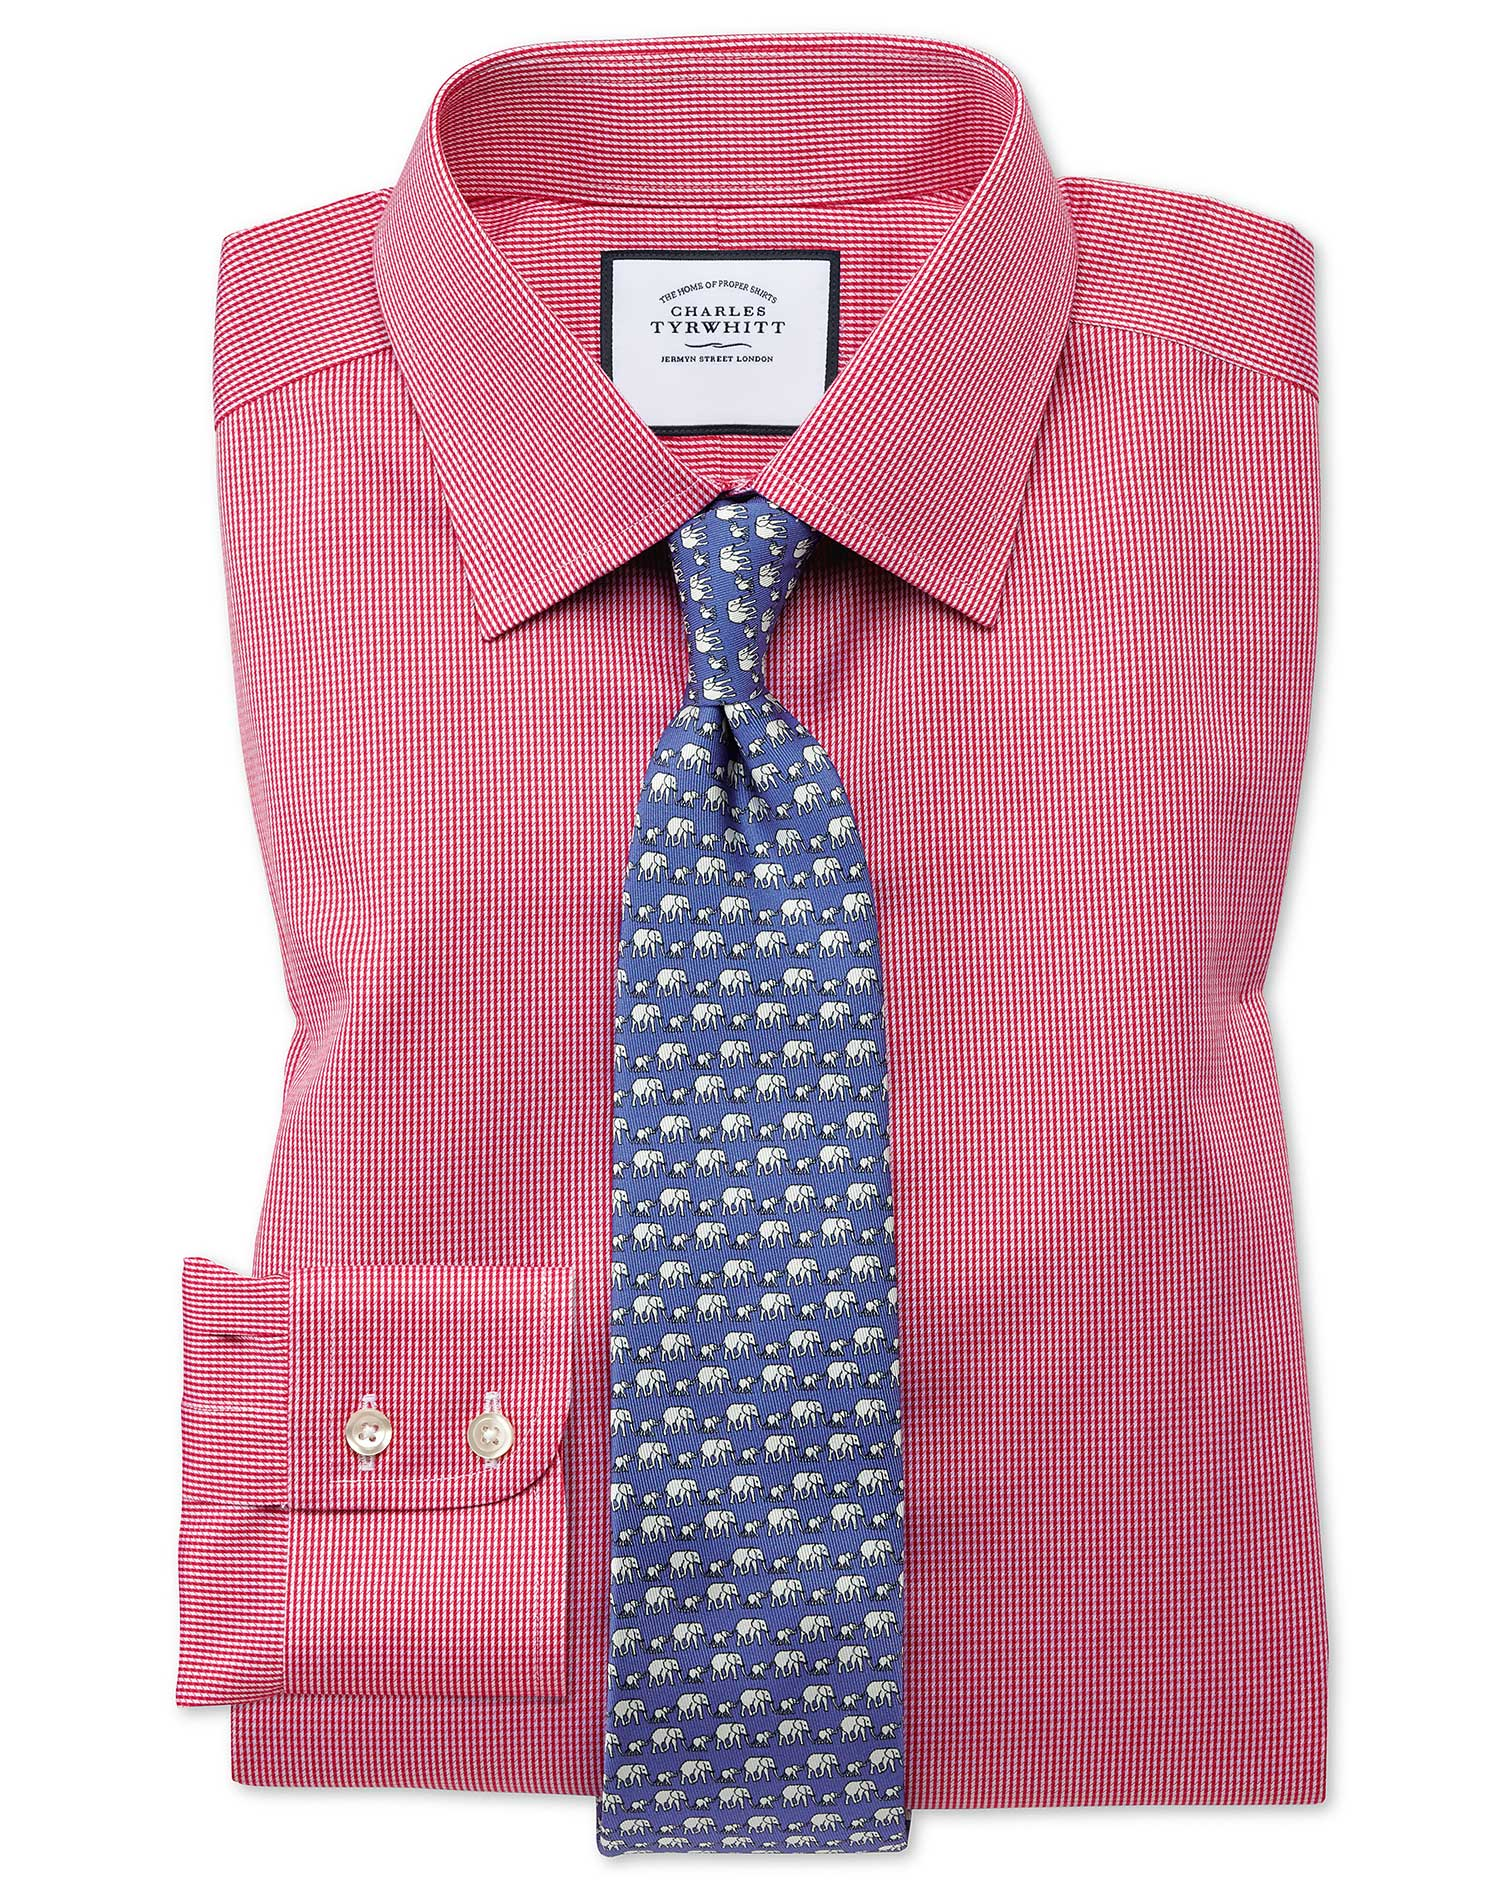 Classic Fit Non-Iron Puppytooth Bright Pink Cotton Formal Shirt Single Cuff Size 16/35 by Charles Ty